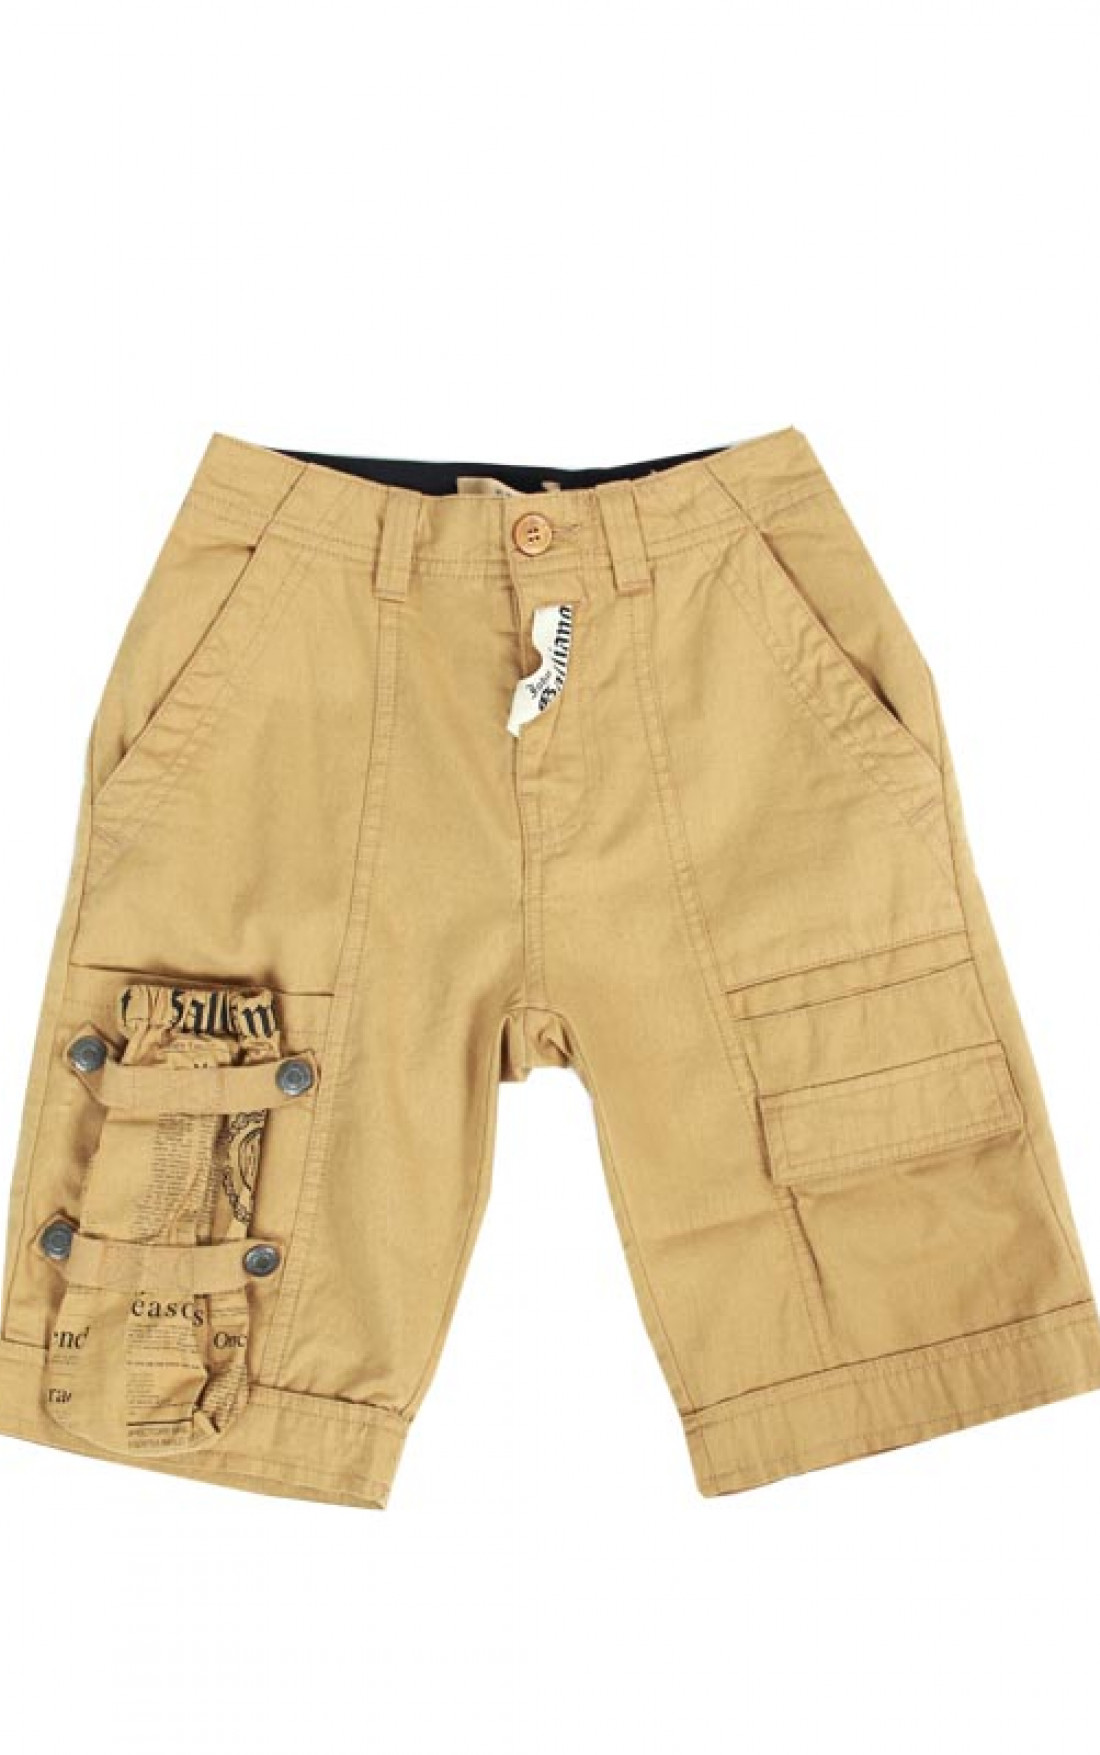 John-Galliano-Kids-Boys-Tan-Shorts-Boudi-UK